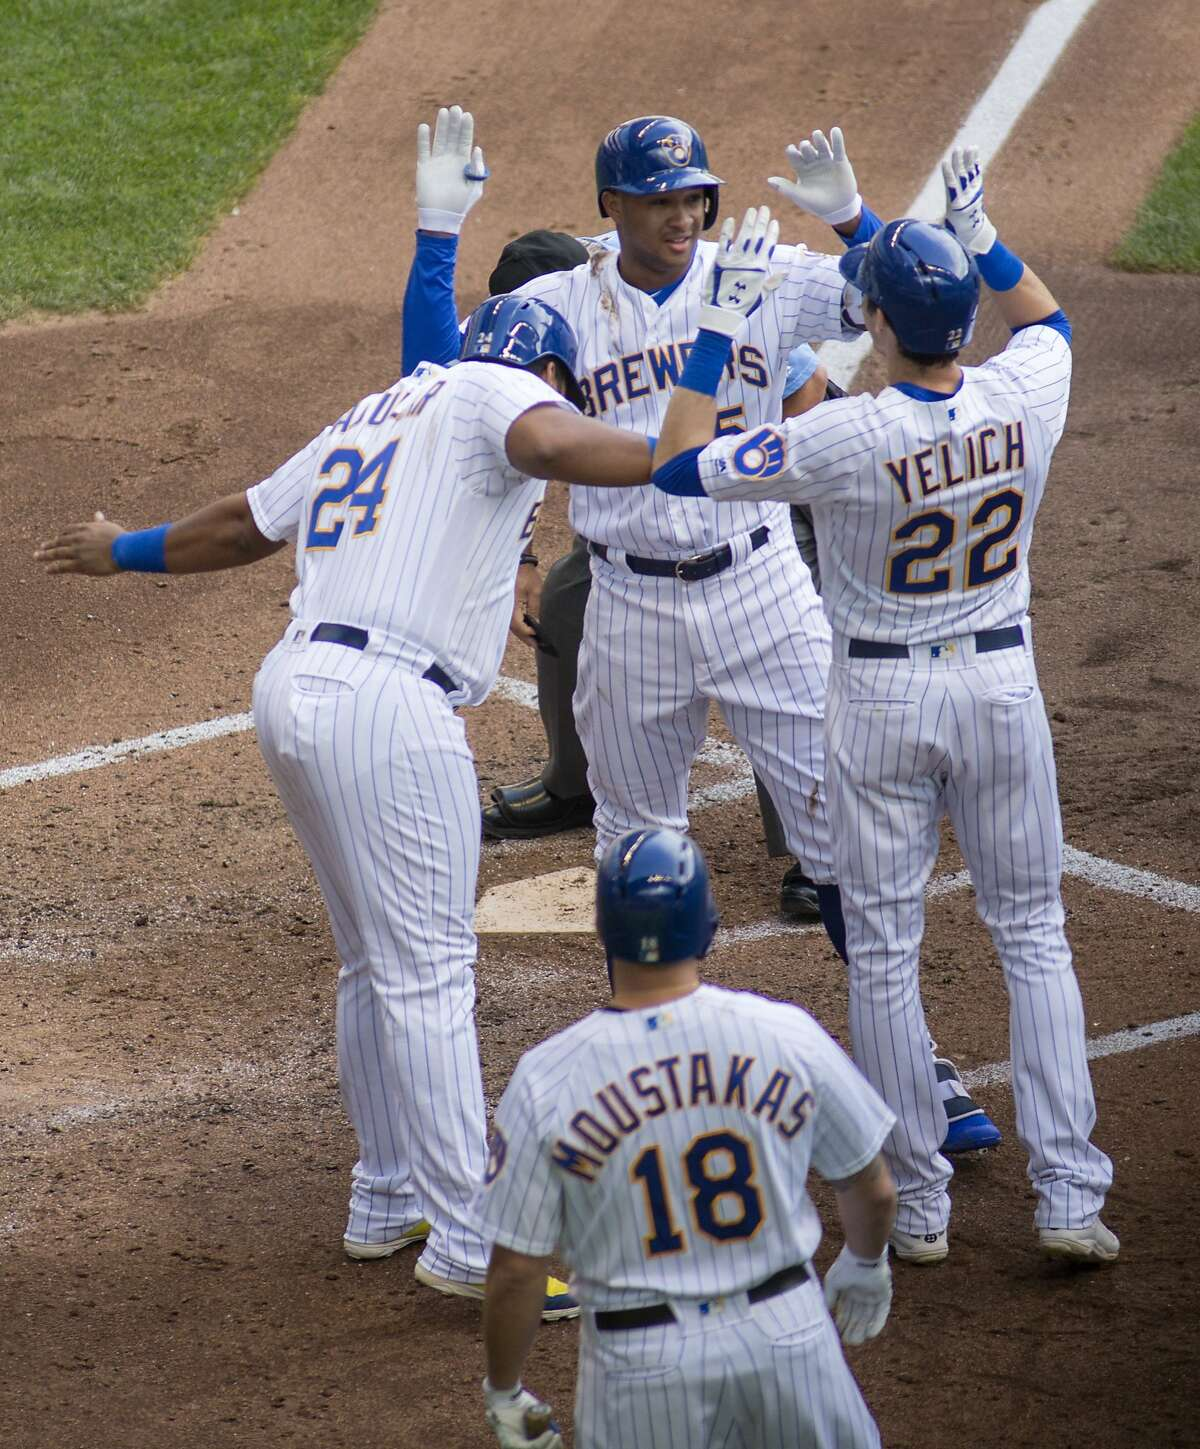 Milwaukee Brewers' Jonathan Schoop, top center, is congratulated by teammates after hitting a grand slam against the San Francisco Giants during the sixth inning of an baseball game Sunday, Sept. 9, 2018, in Milwaukee. (AP Photo/Darren Hauck)